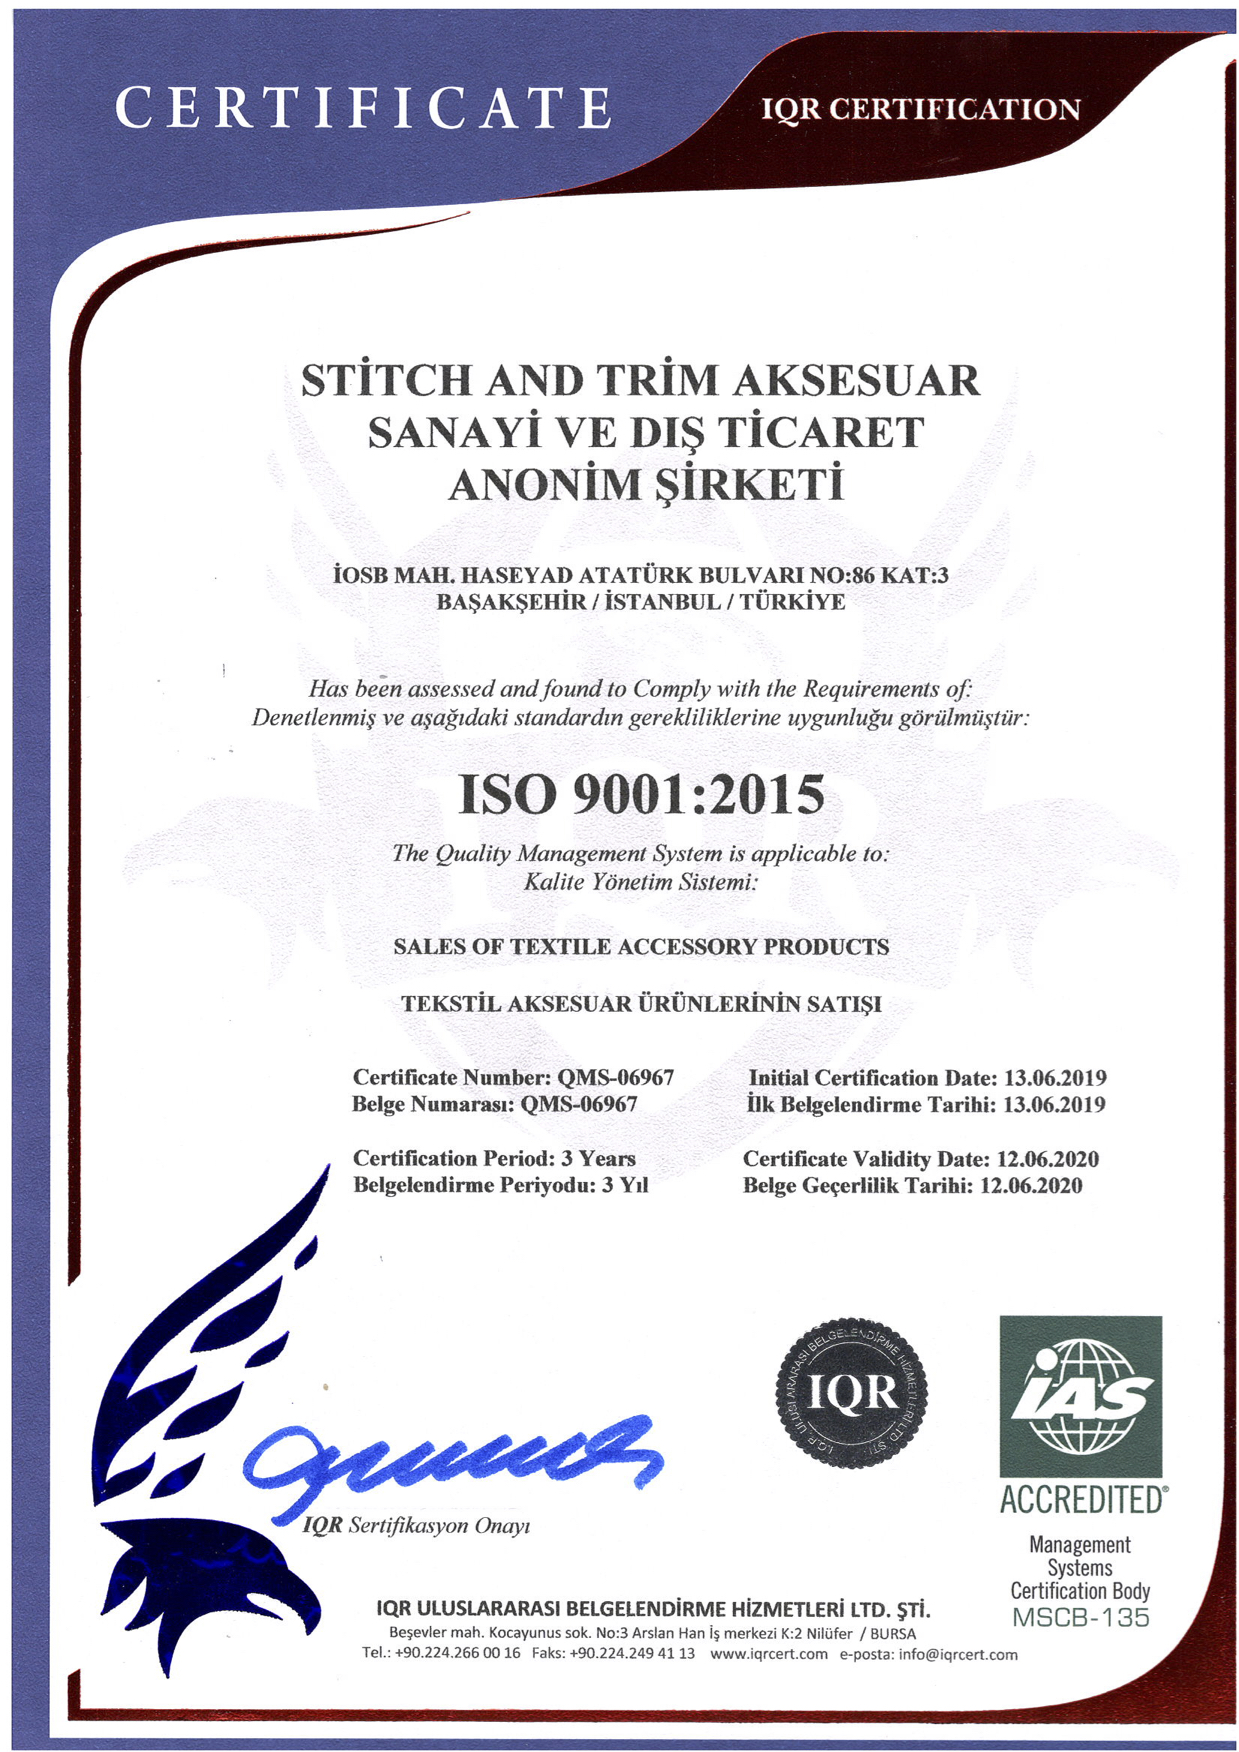 ISO 9001:2015 (THE QUALITY MANAGEMENT SYSTEM)